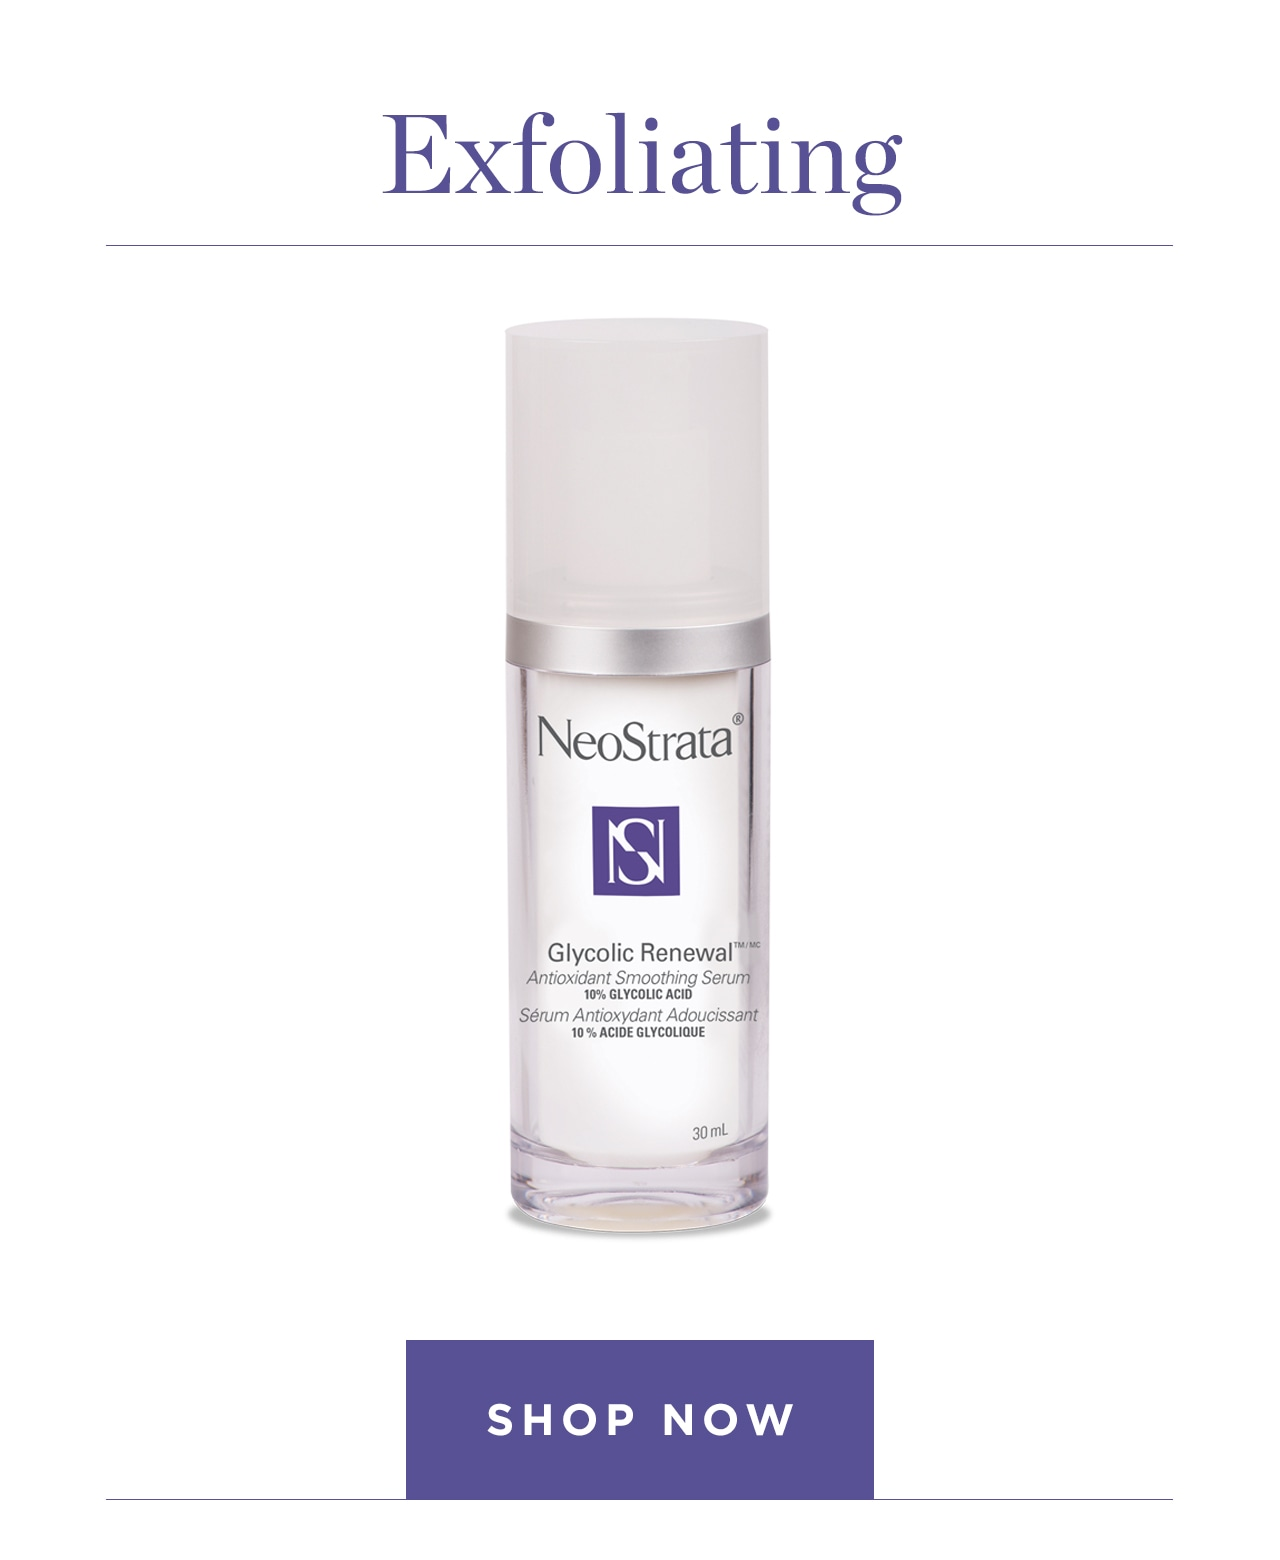 Exfoliating Shop Now